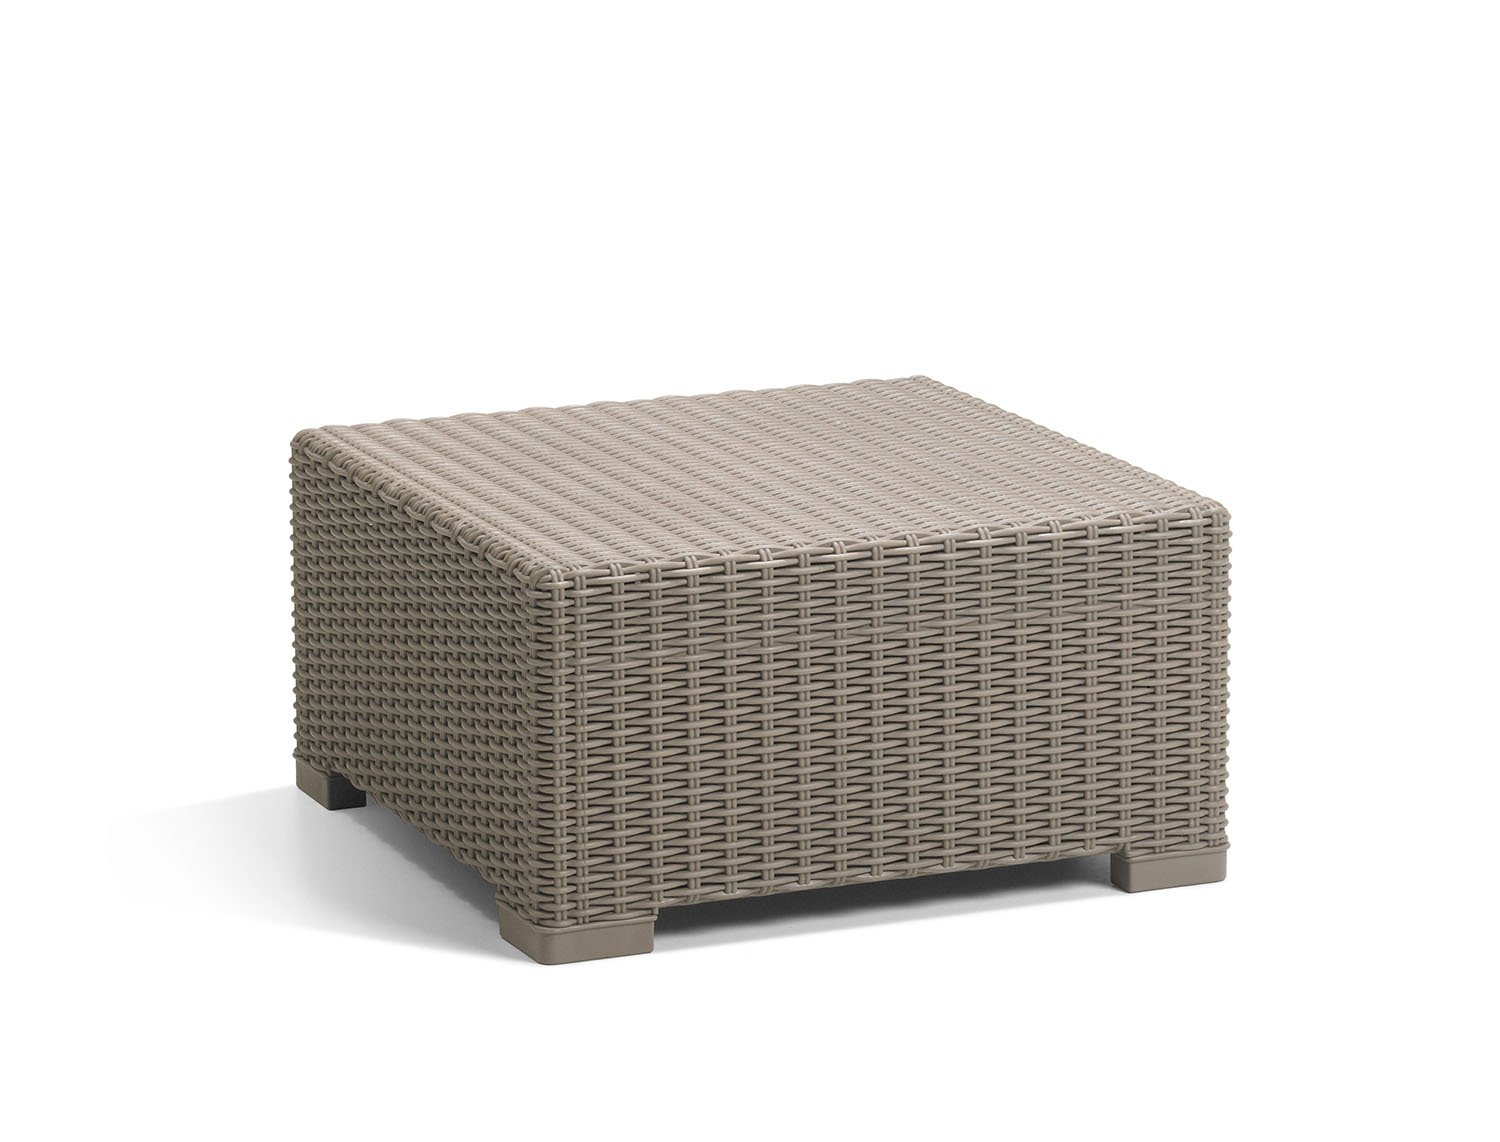 Keter California All-Weather Outdoor Patio Coffee Table in a Resin Plastic Wicker Pattern, Cappuccino